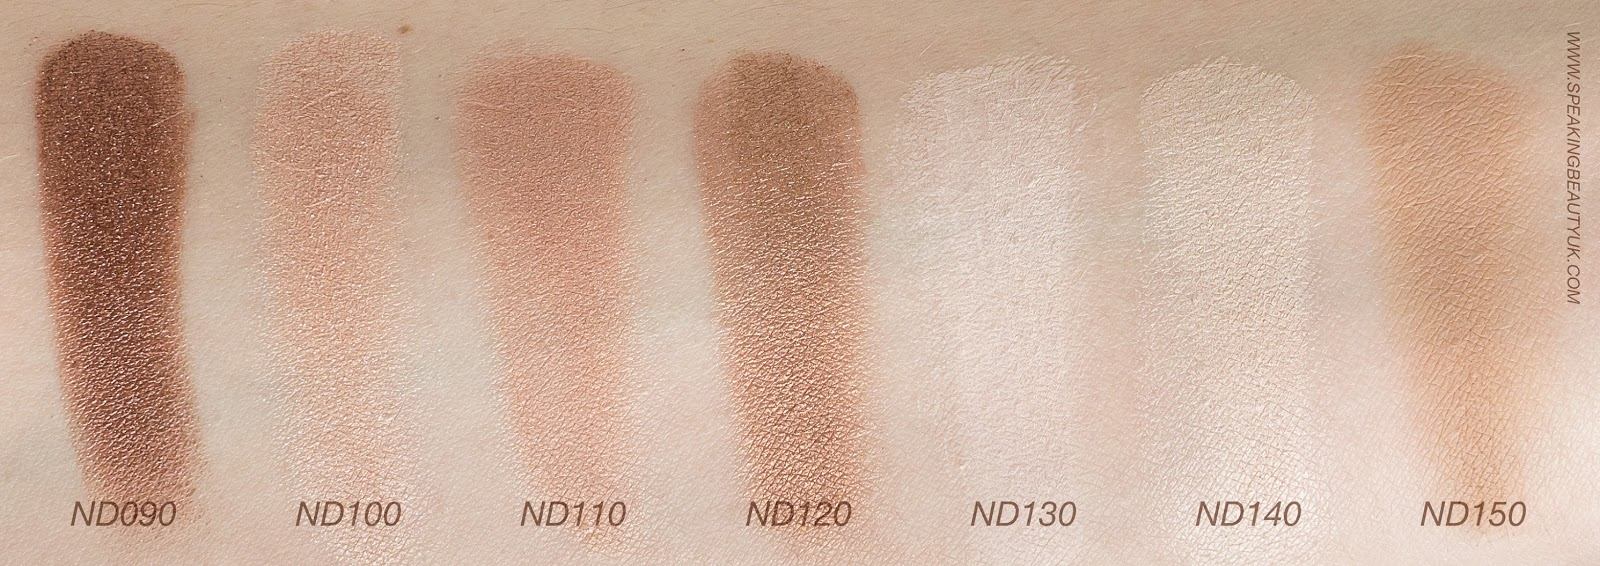 Zoeva Nude Spectrum Eyeshadow Palette swatches